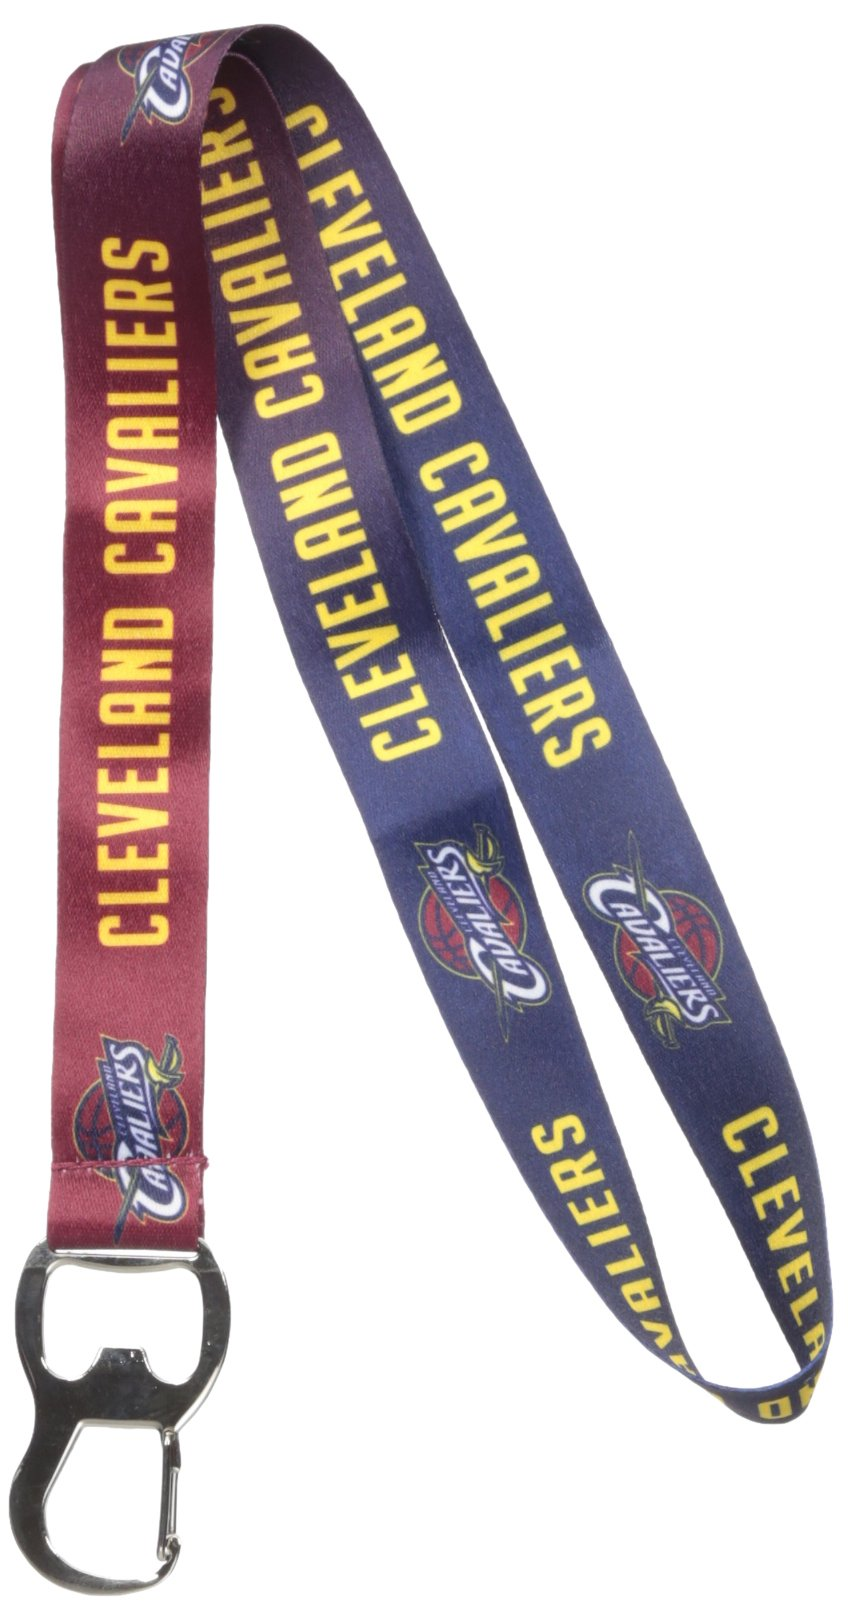 NBA Cleveland Cavaliers Ombre Lanyard, Wine, One Size by Pro Specialties Group